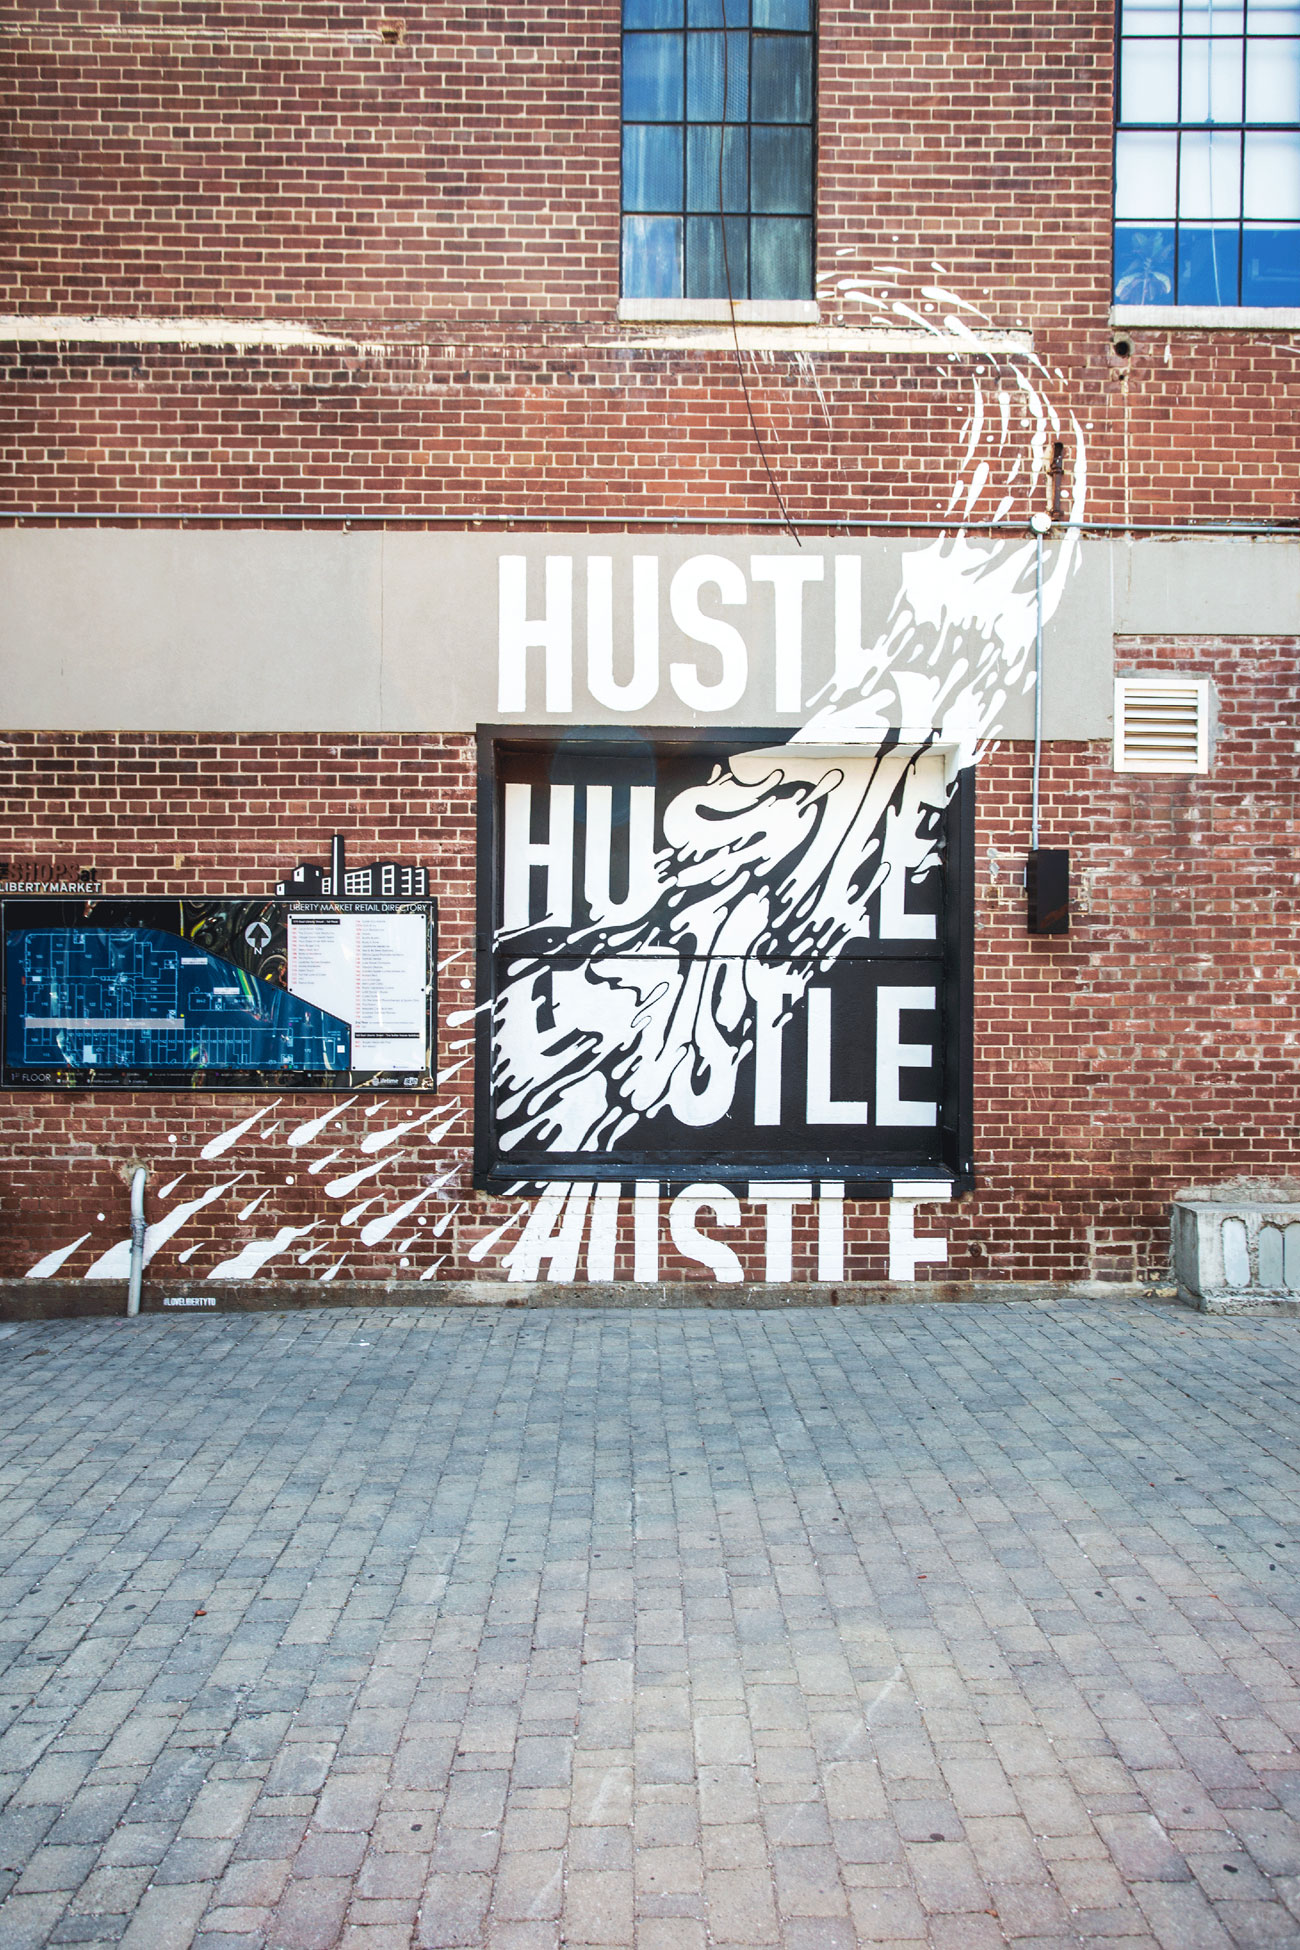 TY_170512_TDC6_33_BenJohnston_Hustle_hustle-final-pic